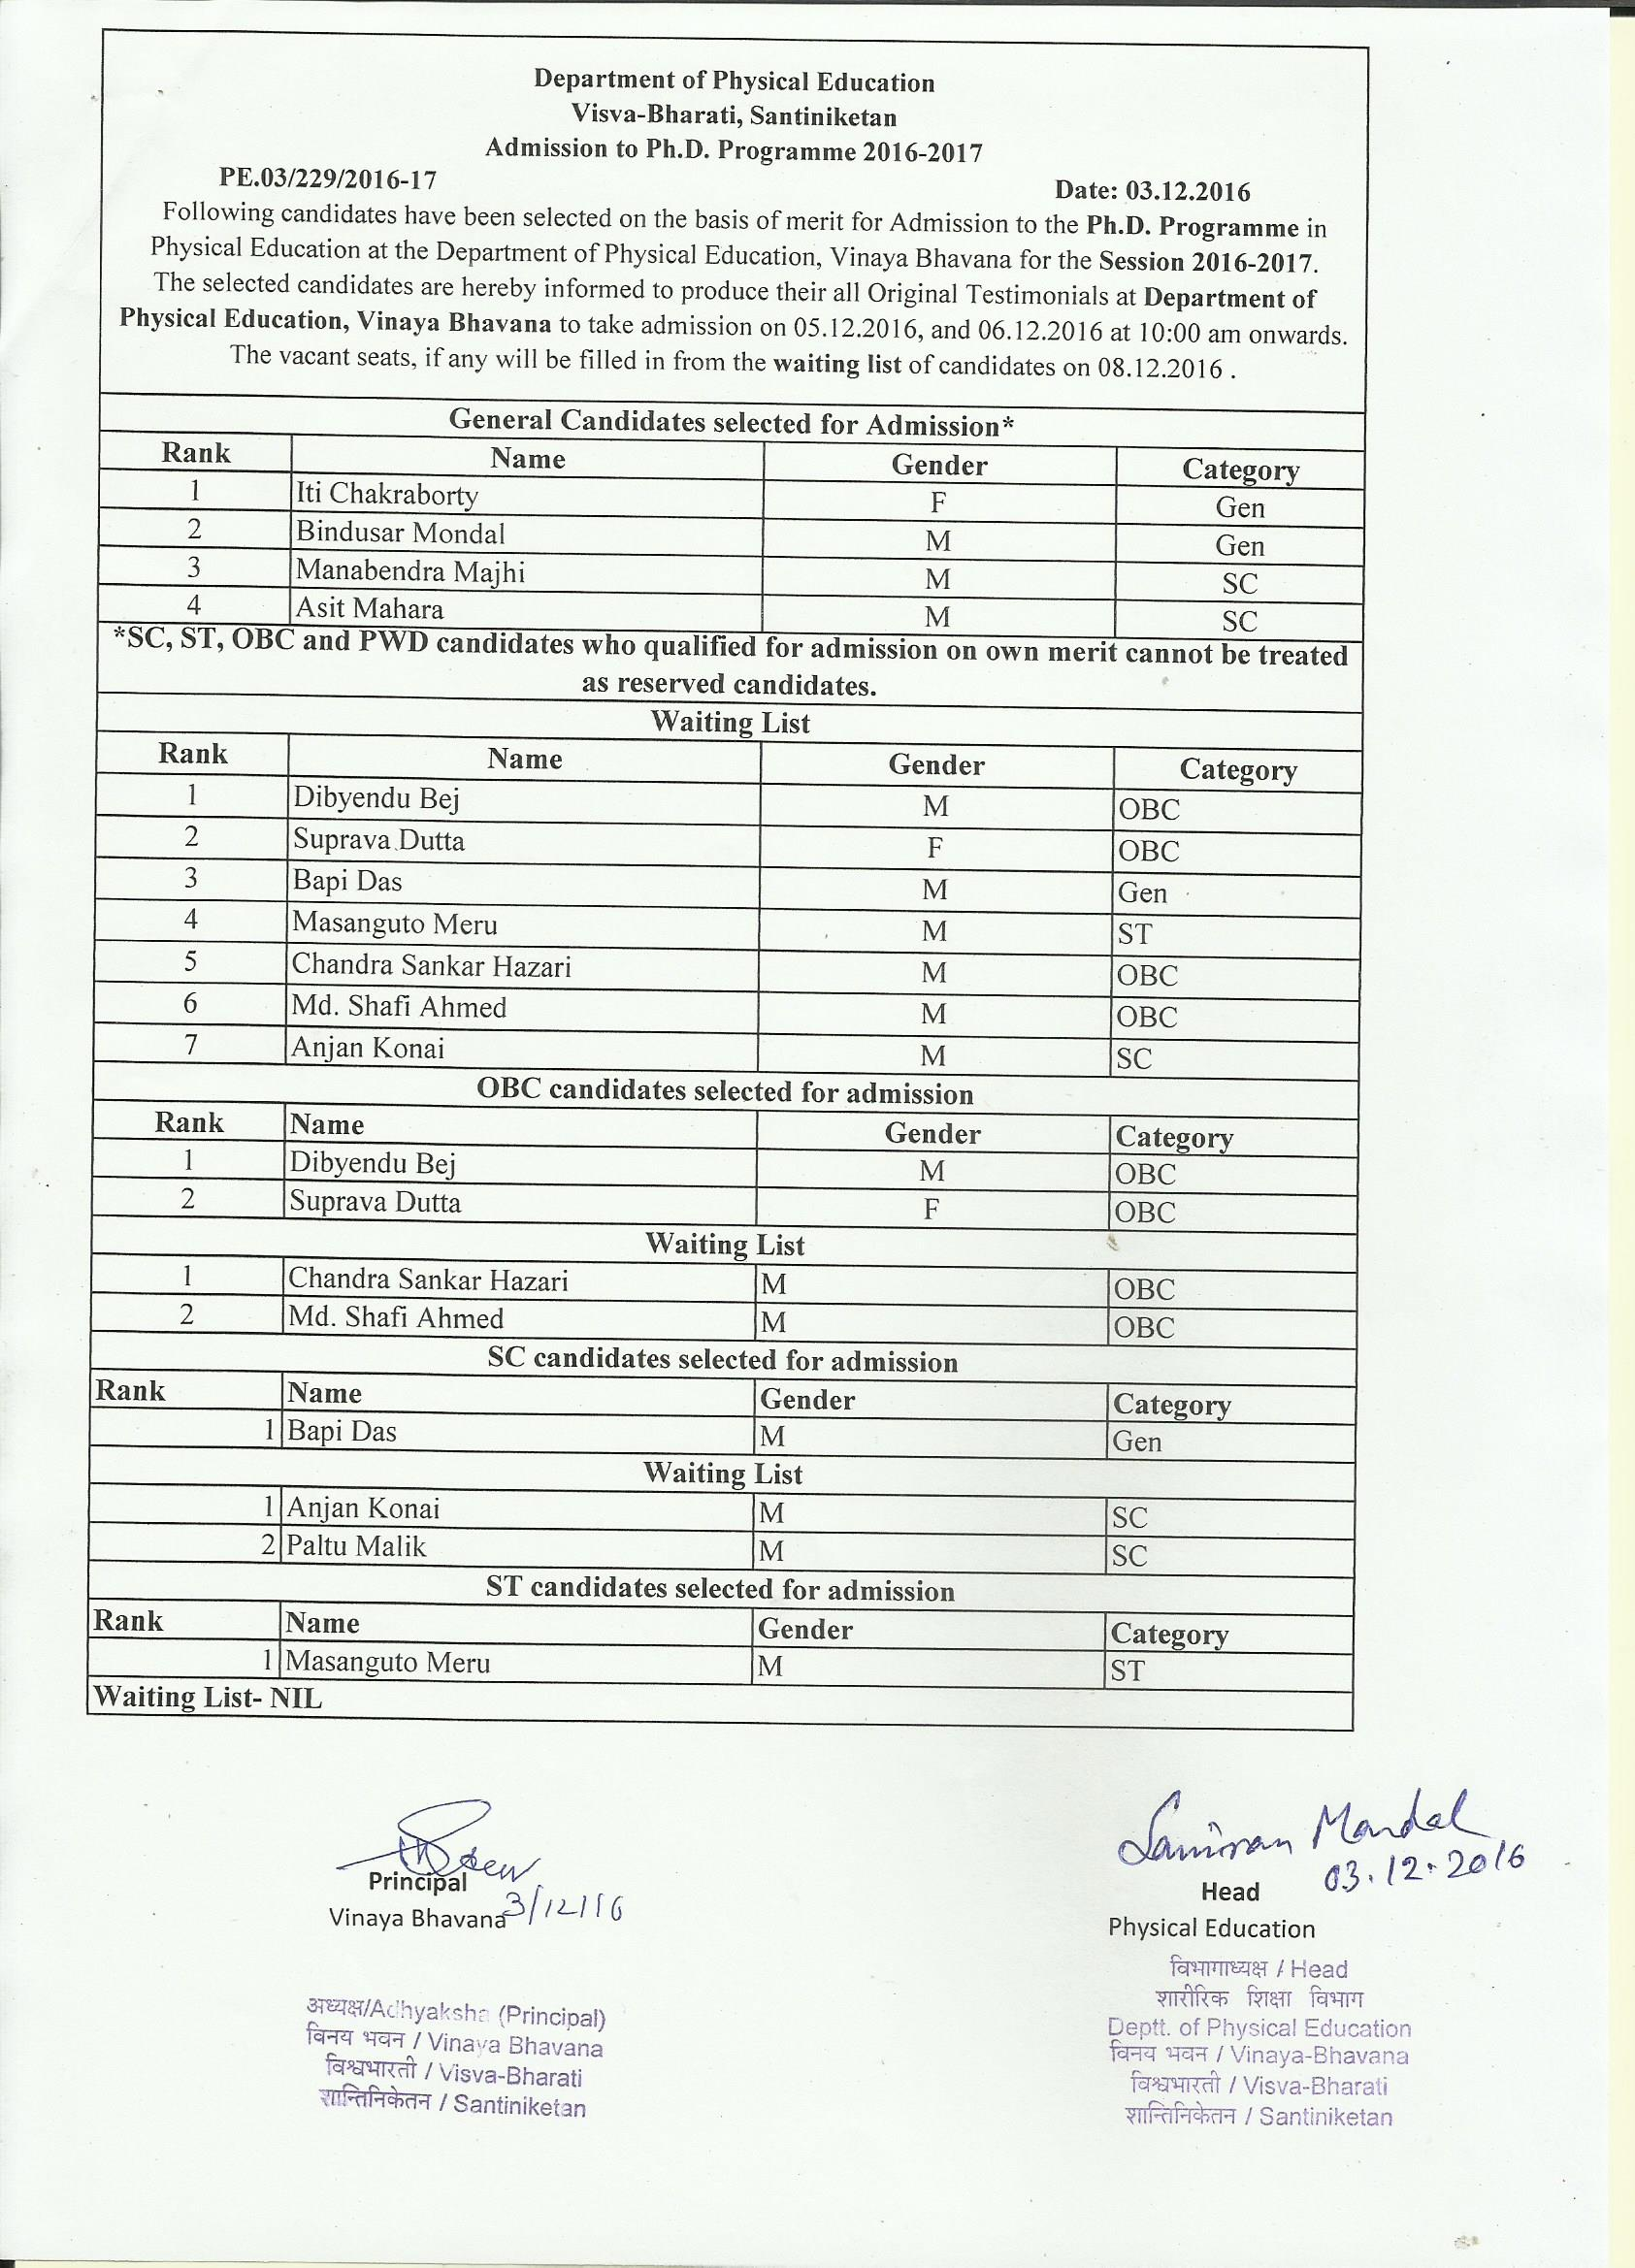 visva bharati phd coursework results